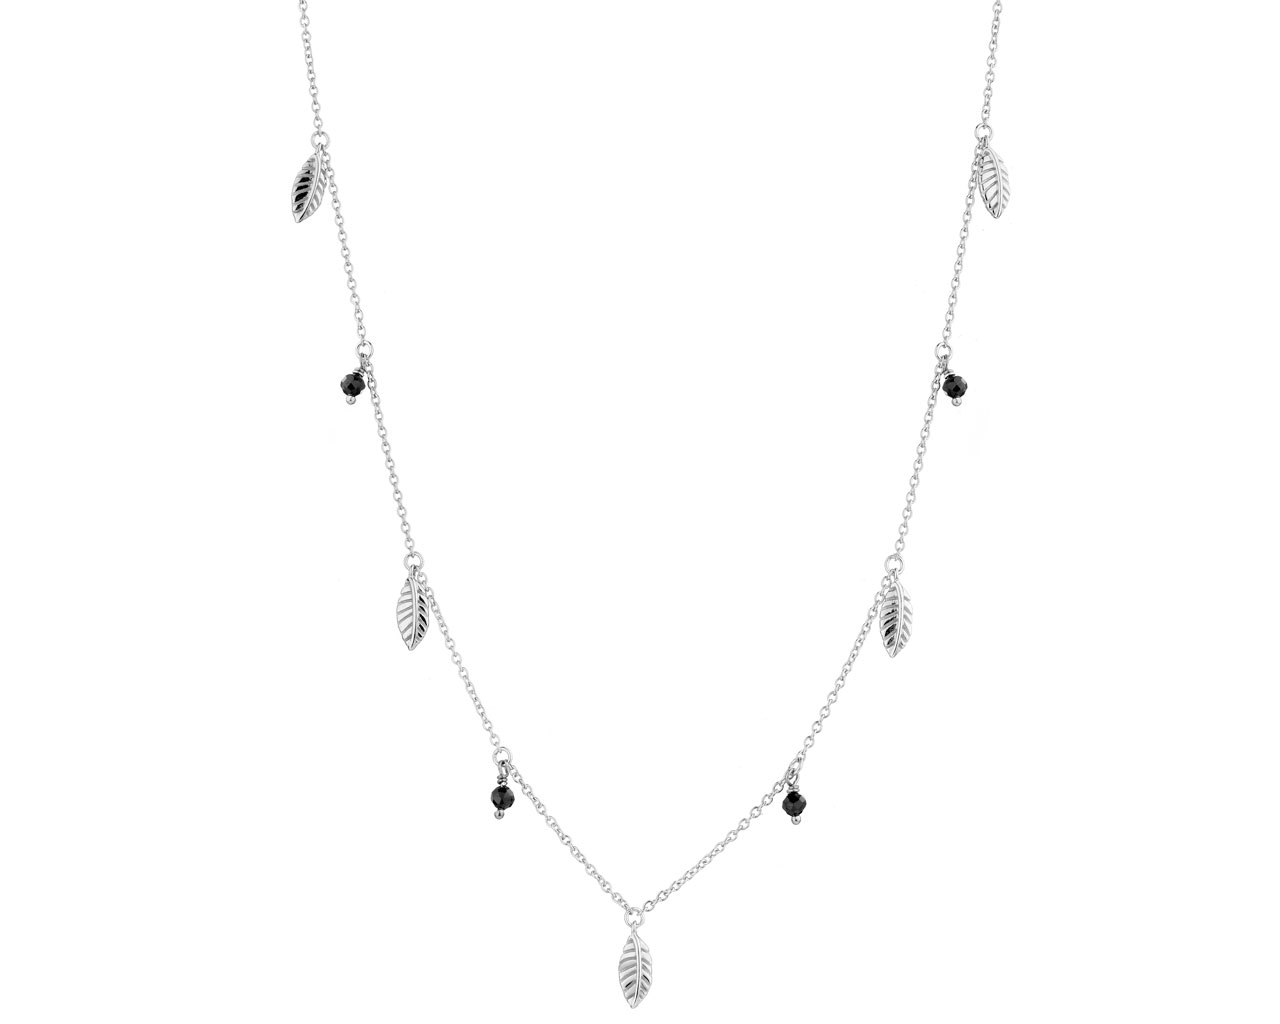 03796039608ba1 Rhodium Plated Silver Necklace with Cubic Zirconia / Artelioni